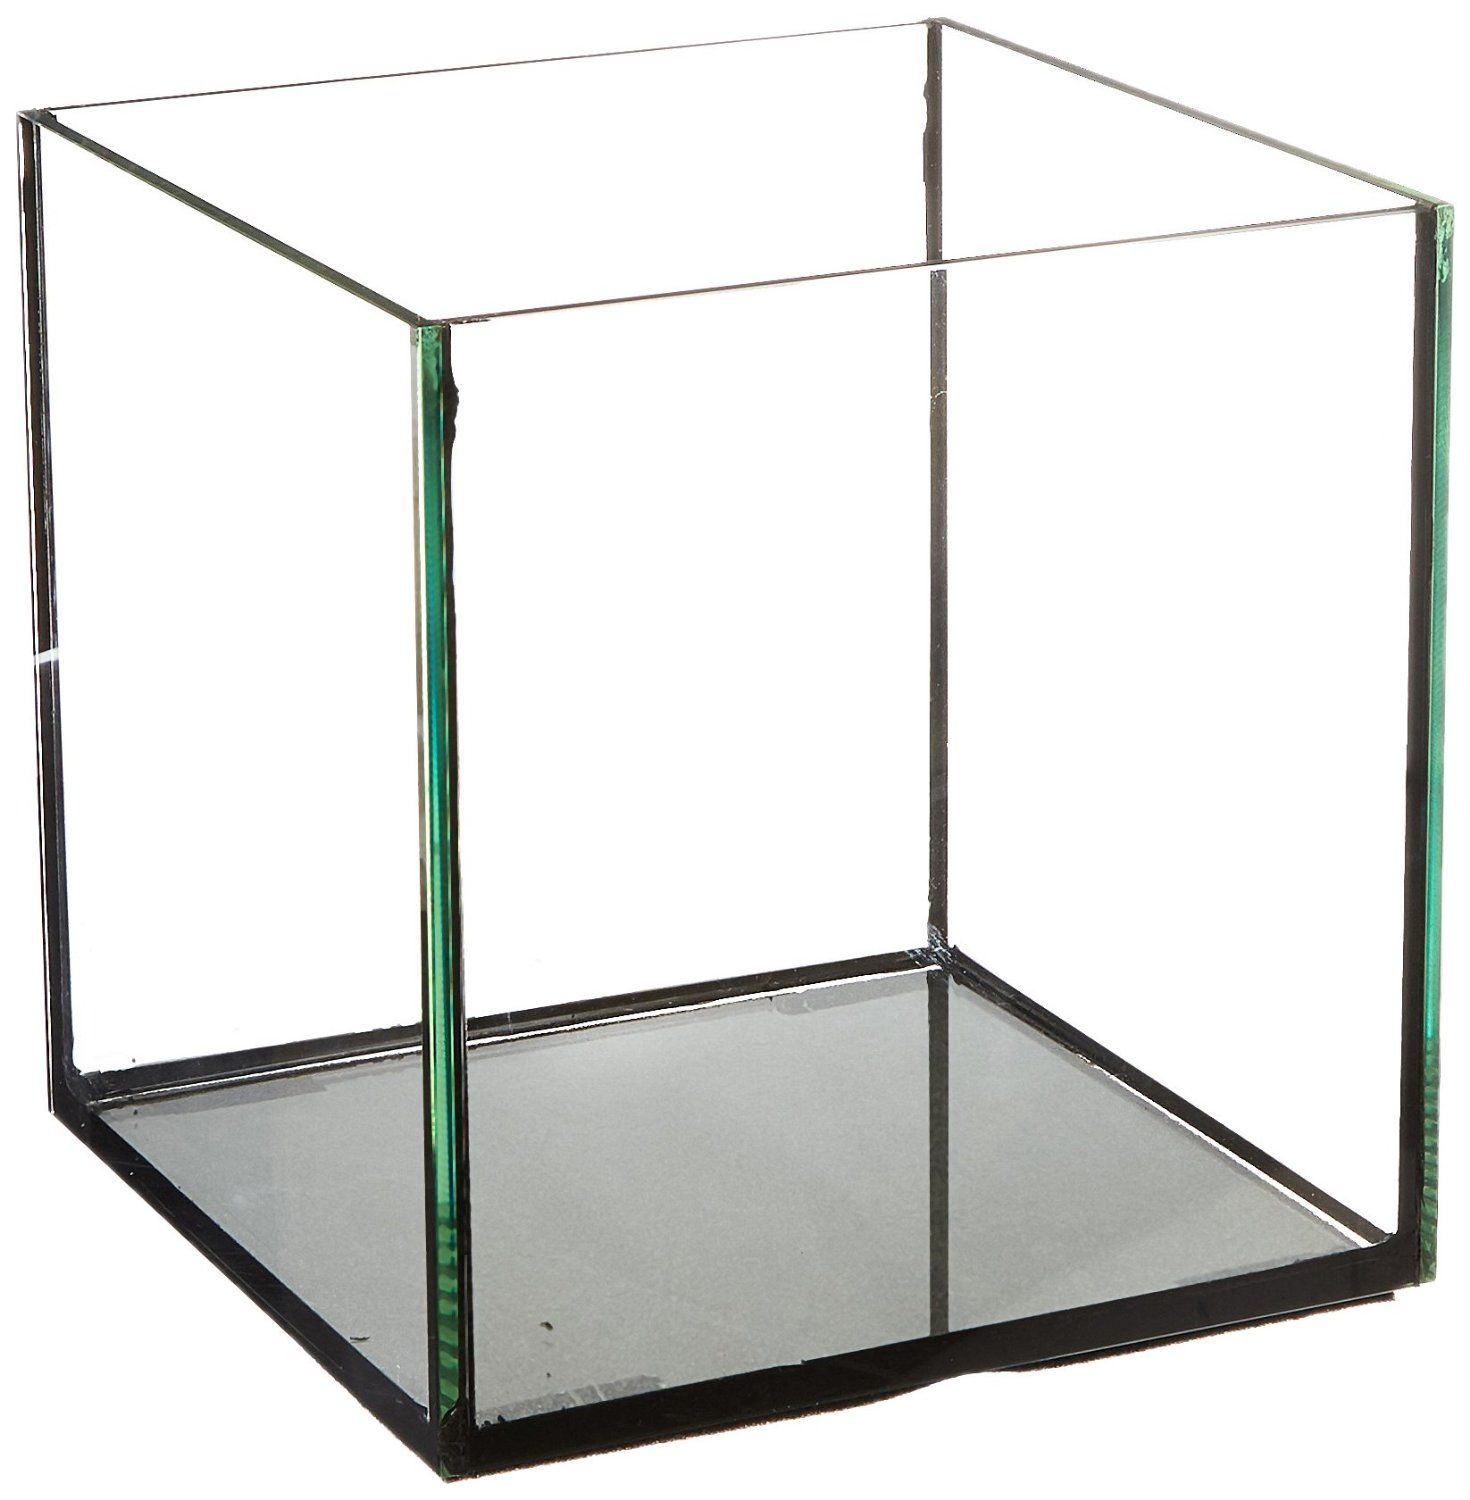 Amazoncom Deep Blue Professional Adb11441 Rimless Cube Aquarium Glass Tank,